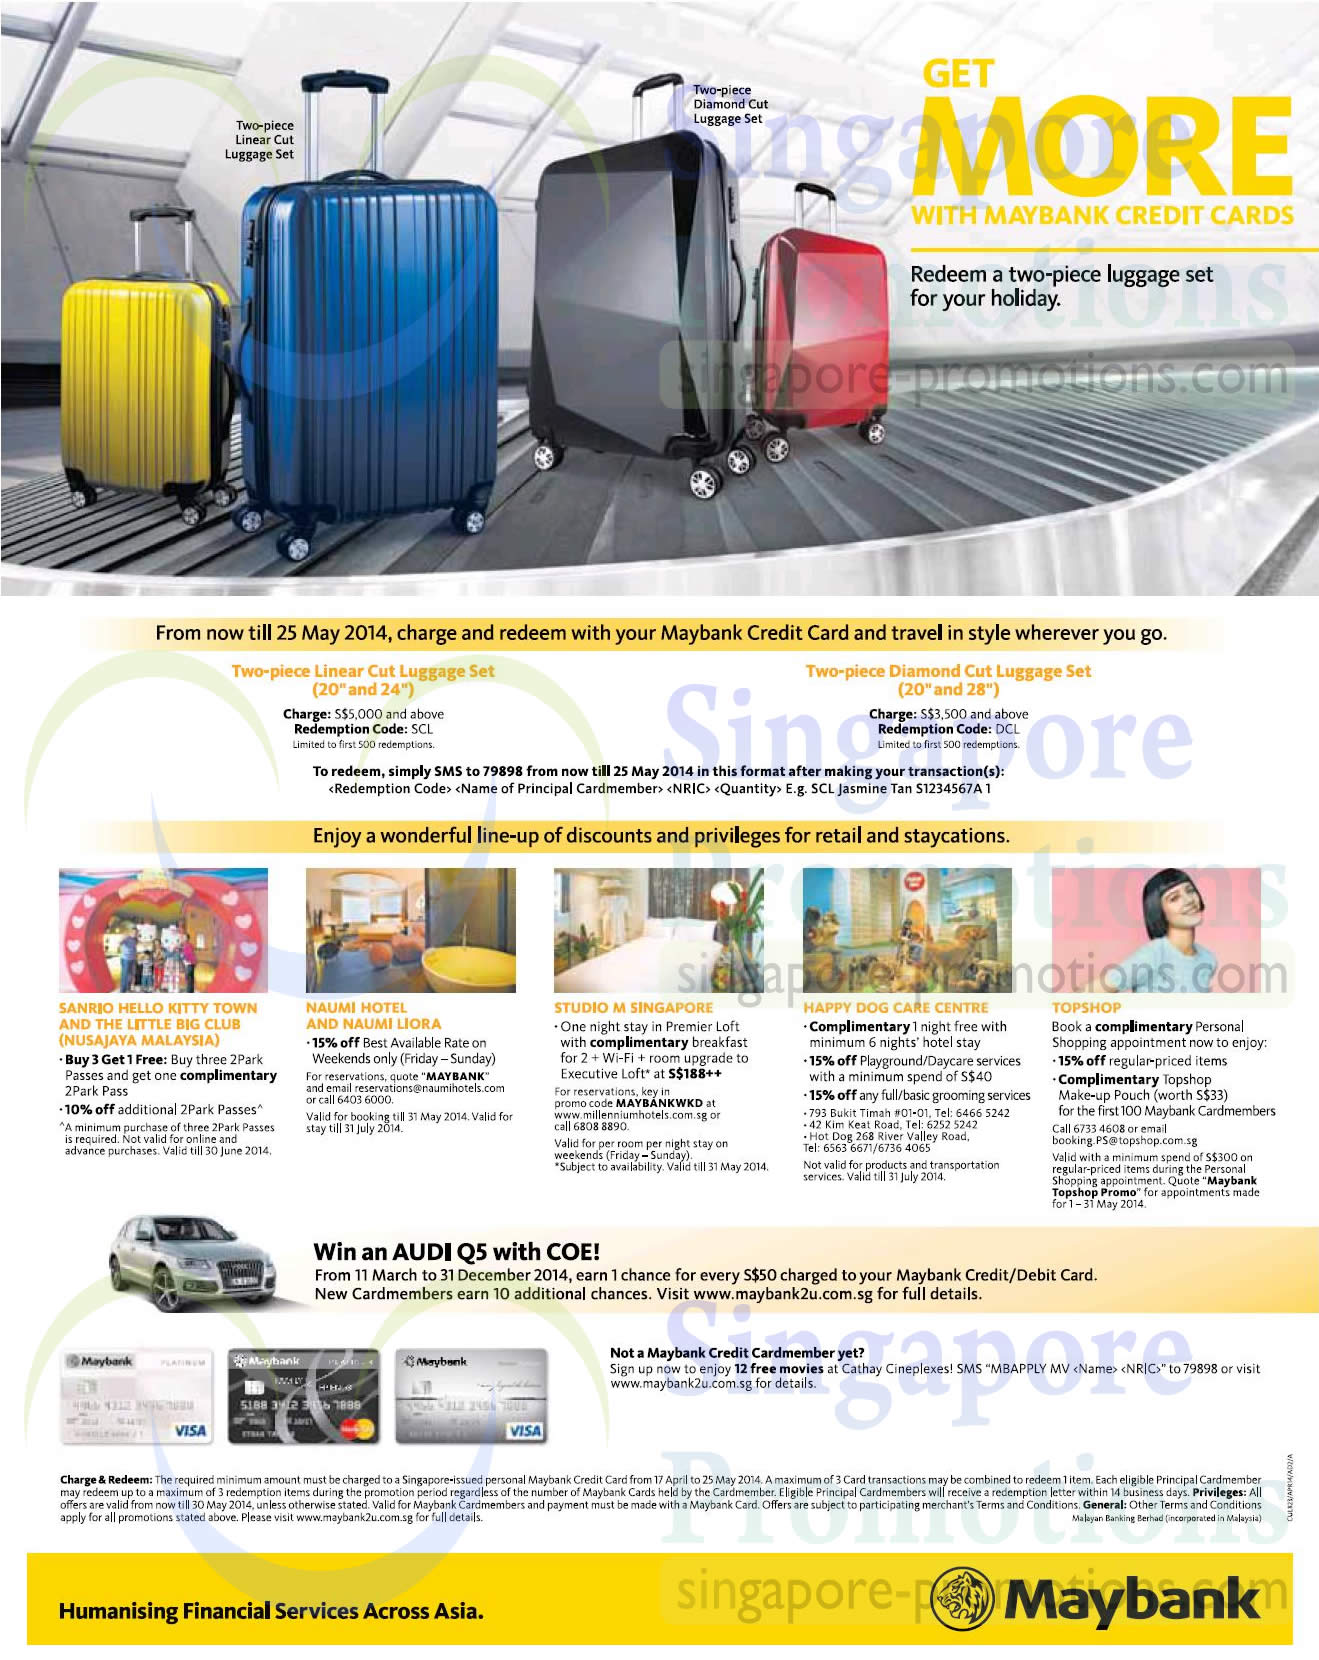 maybank 29 apr 2014 Â maybank credit cards free luggage set promo